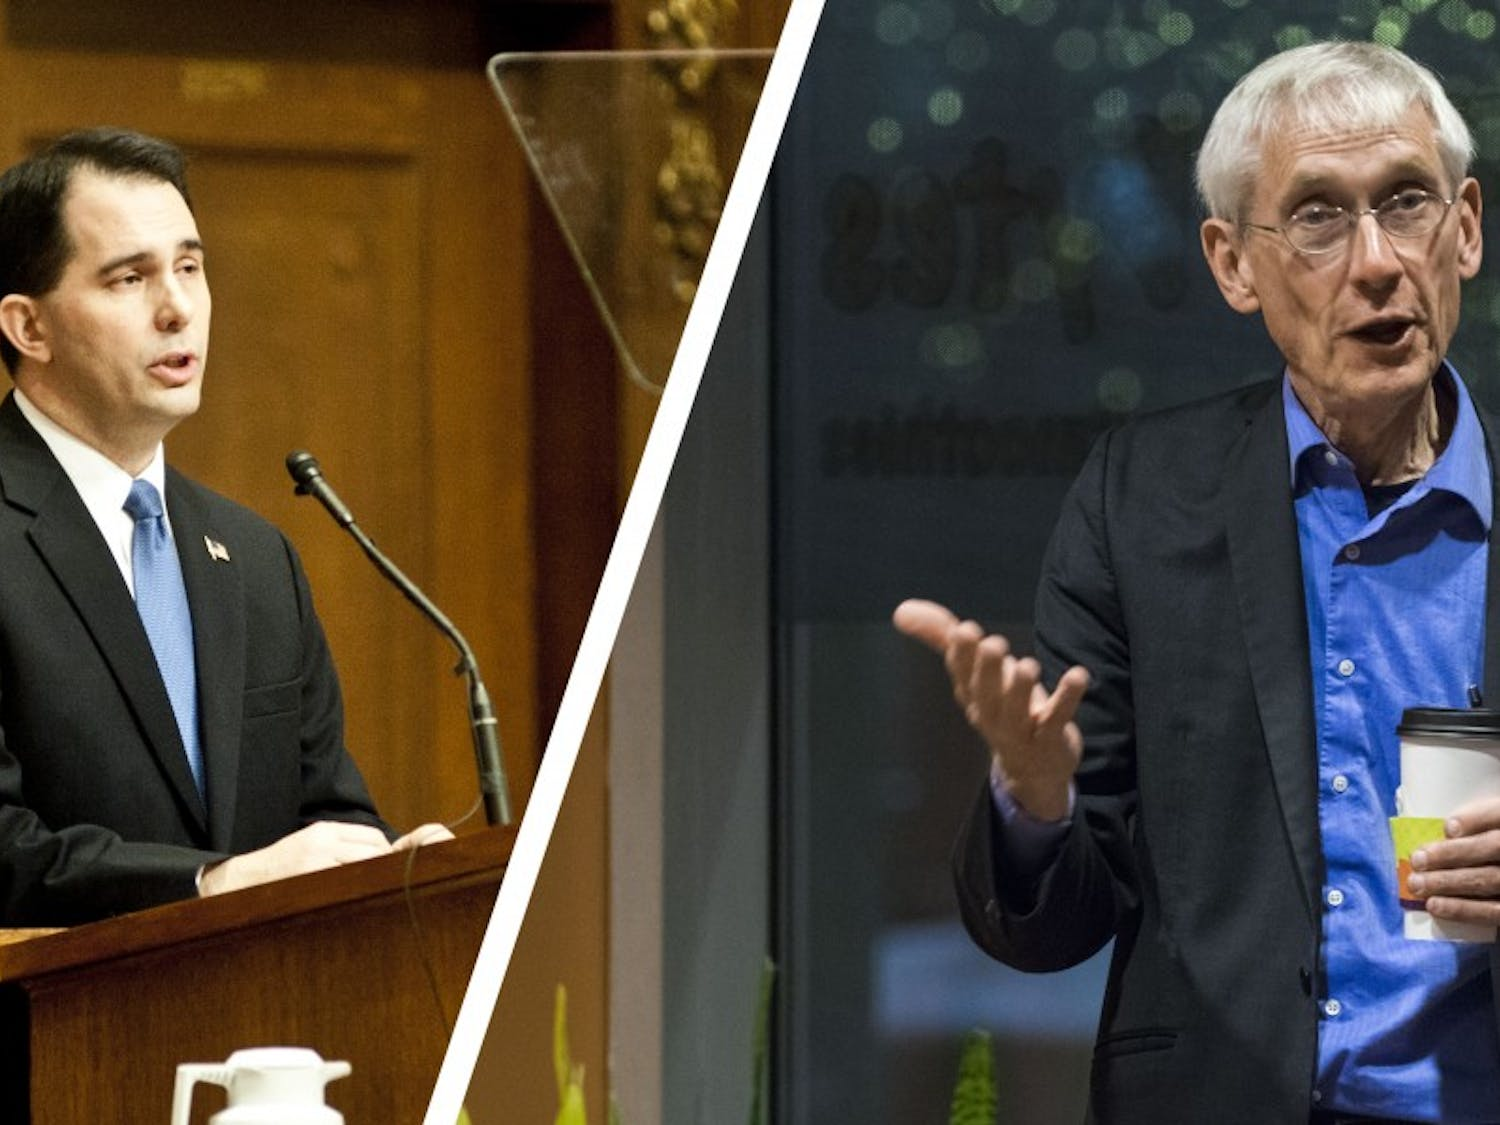 Walker, Evers spar over taxes, healthcare in first debate